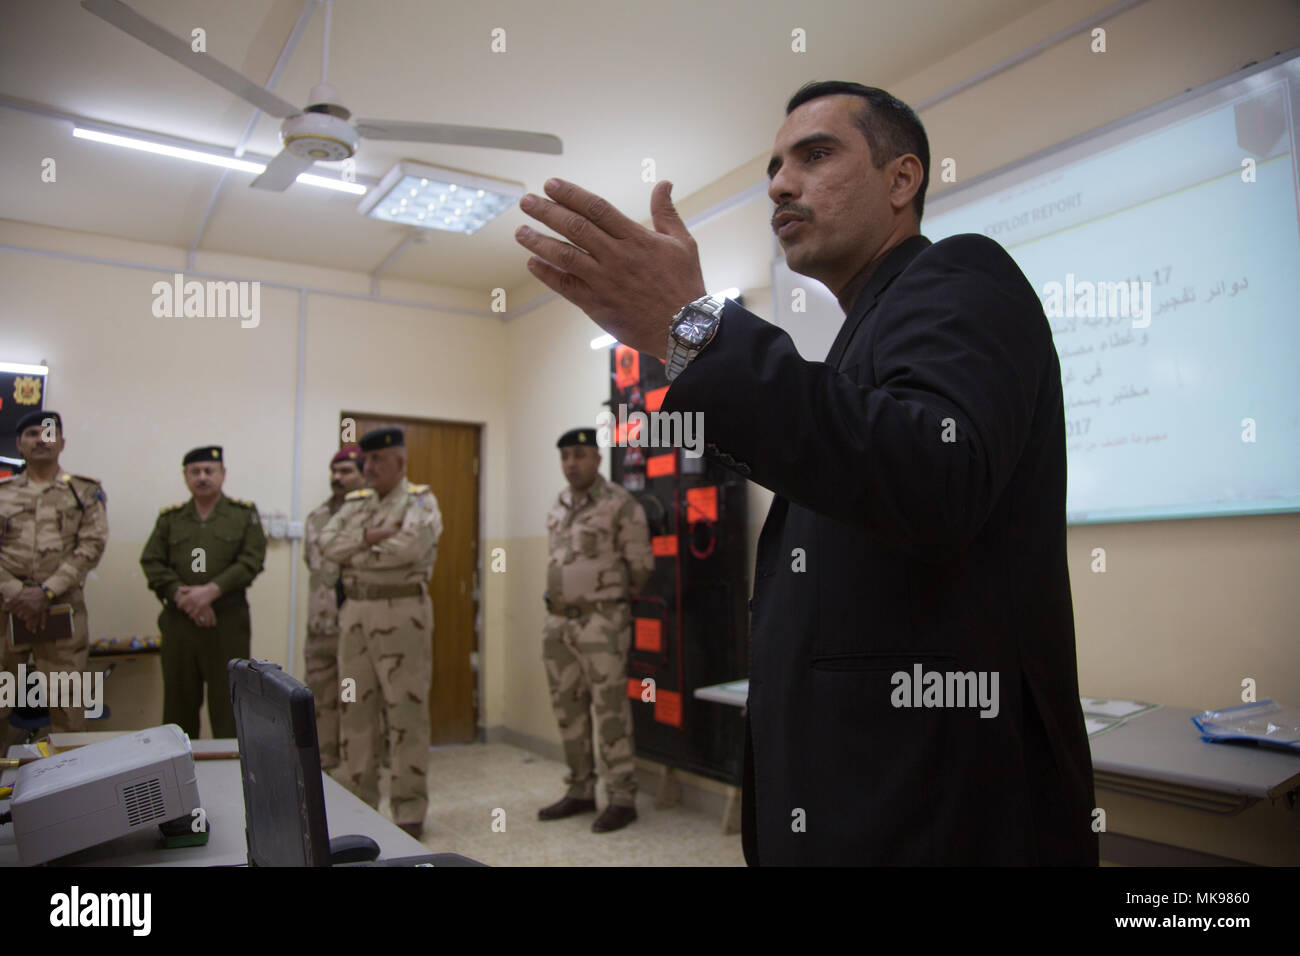 An Iraqi soldier gives a presentation during a counter improvised explosive device exploitation class graduation at the Besmaya Range Complex, Iraq, Nov. 29, 2017. This presentation is to show the class what he's learned throughout the several week course. The Besmaya Range Complex is one of four Combined Joint Task Force - Operation Inherent Resolve building partner capacity locations dedicated to training partner forces and enhancing their effectiveness on the battlefield. CJTF-OIR is the global Coalition to defeat ISIS in Iraq and Syria. (U.S. Army photo by Sgt. Mitchell Ryan) - Stock Image